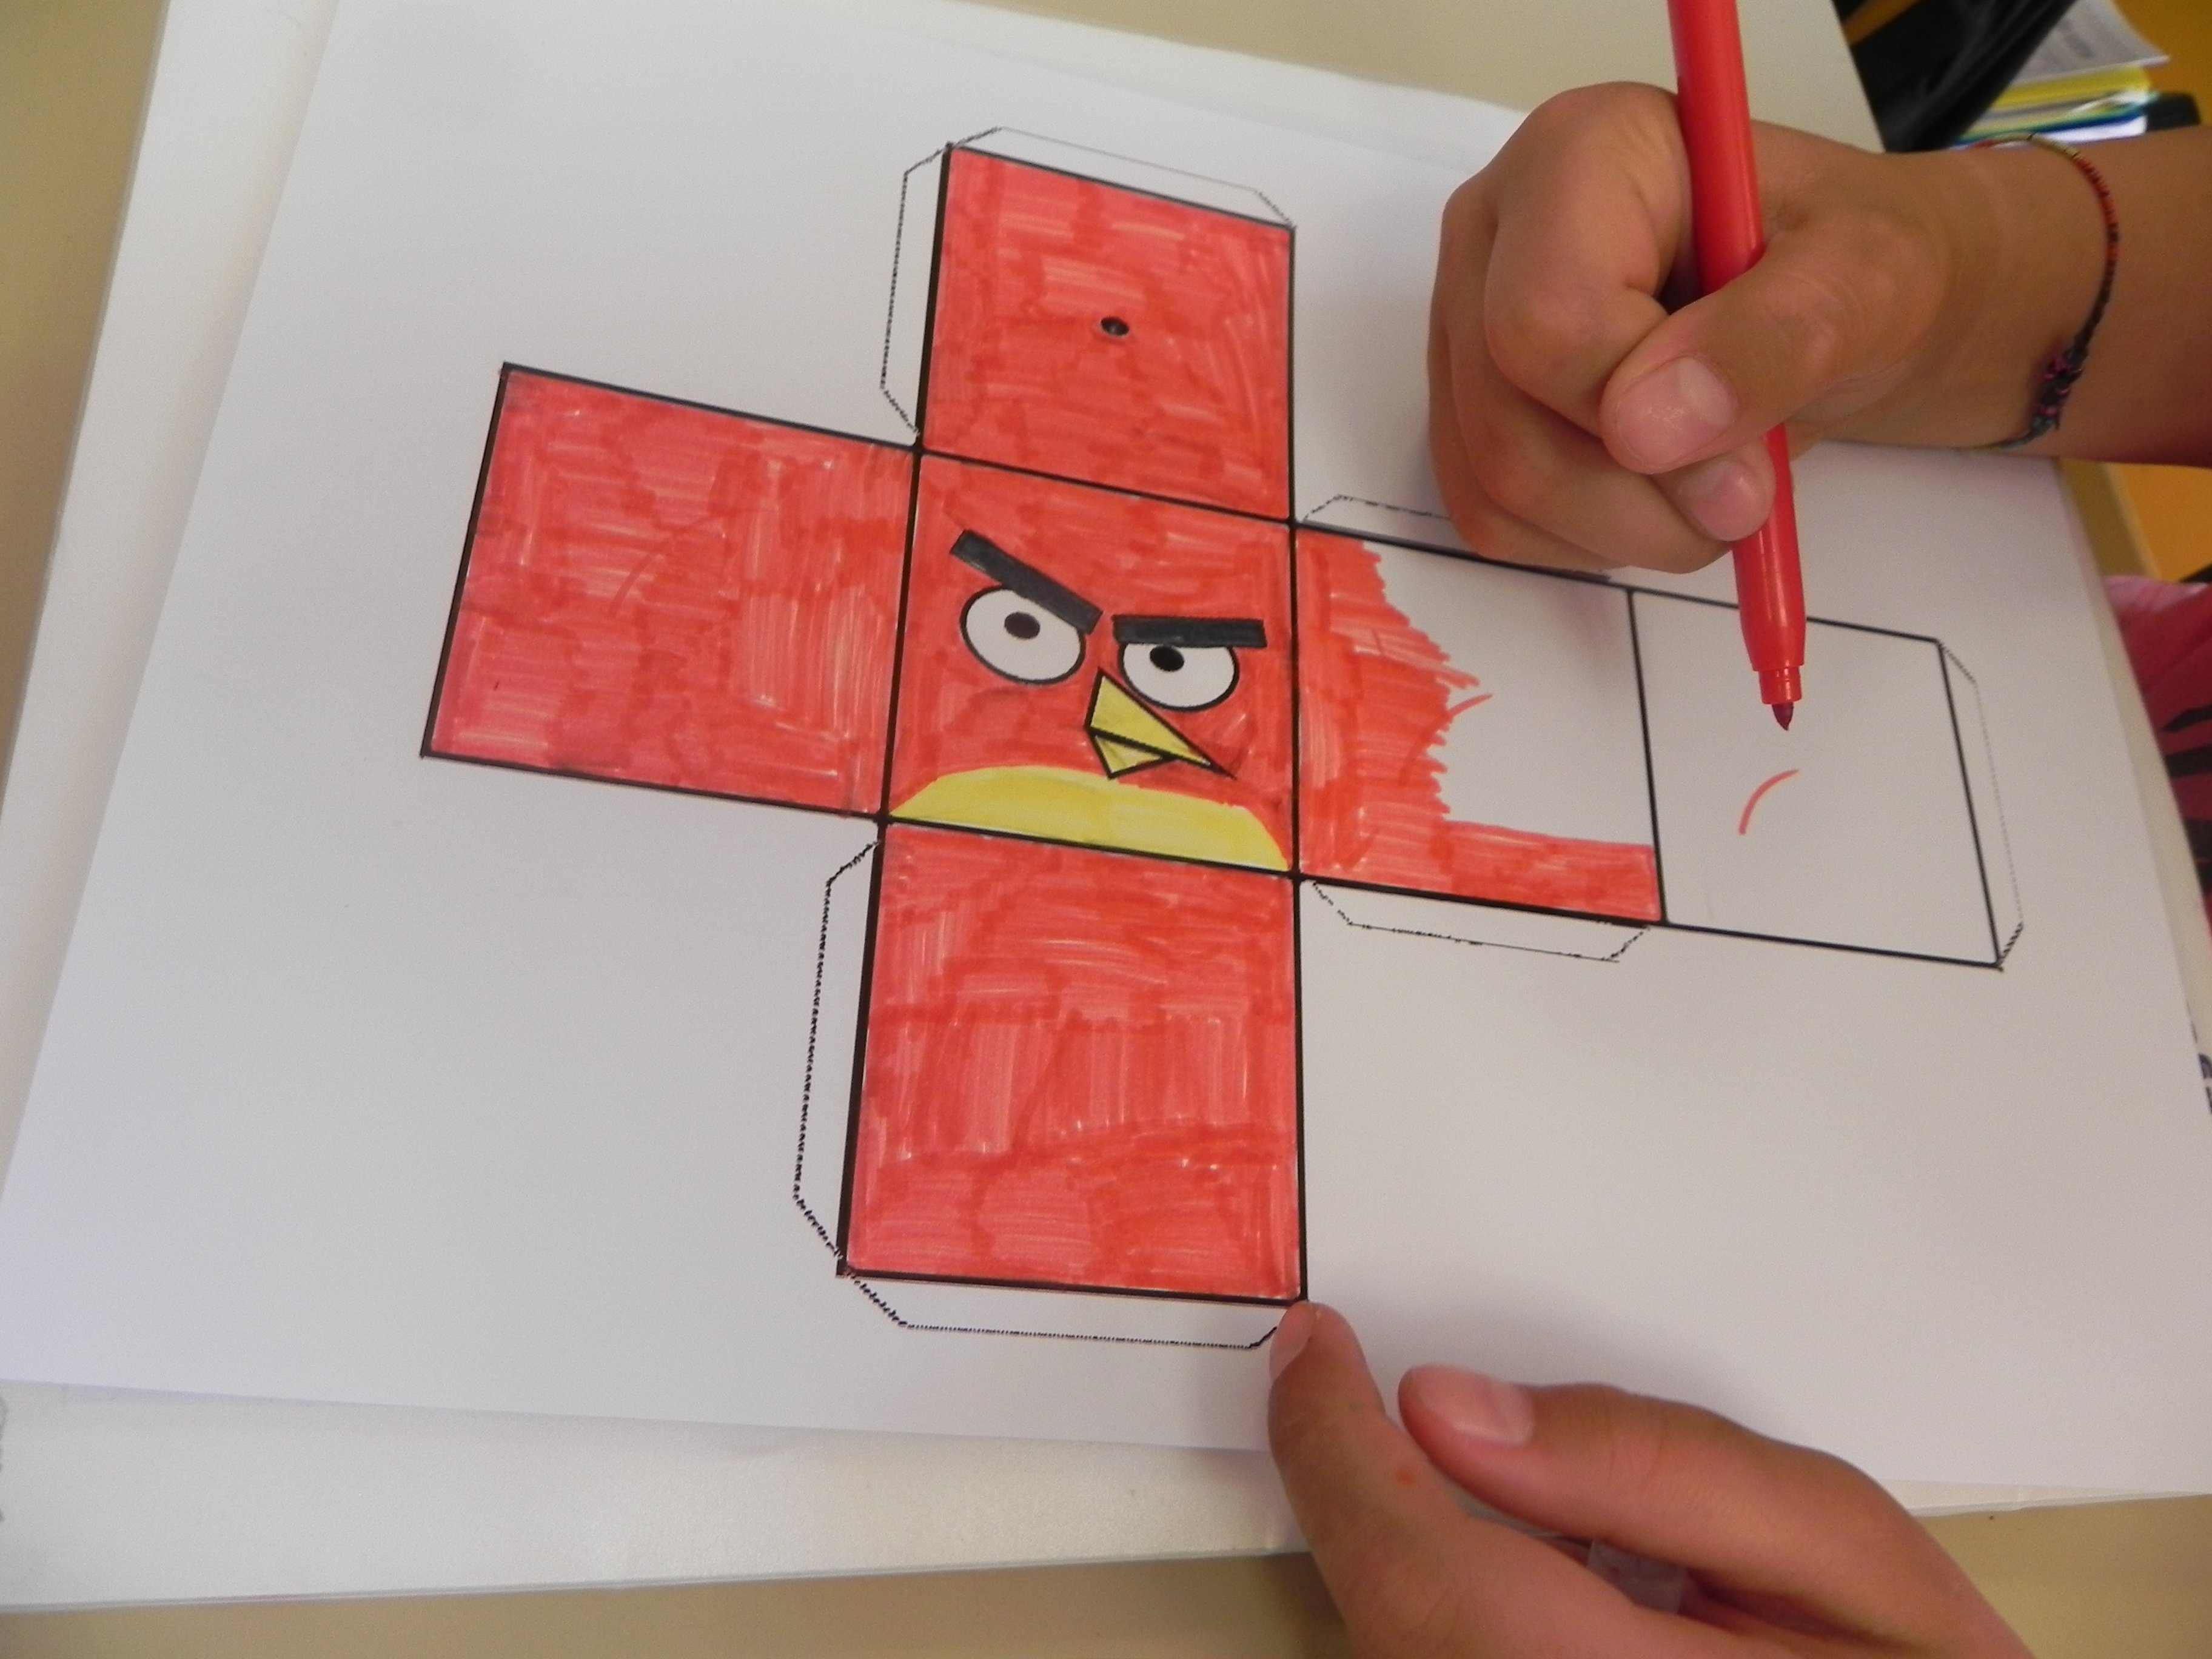 Coloriage Solide Cp.Des Solides Rigolos Angry Birds Et Picachu Recreatisse